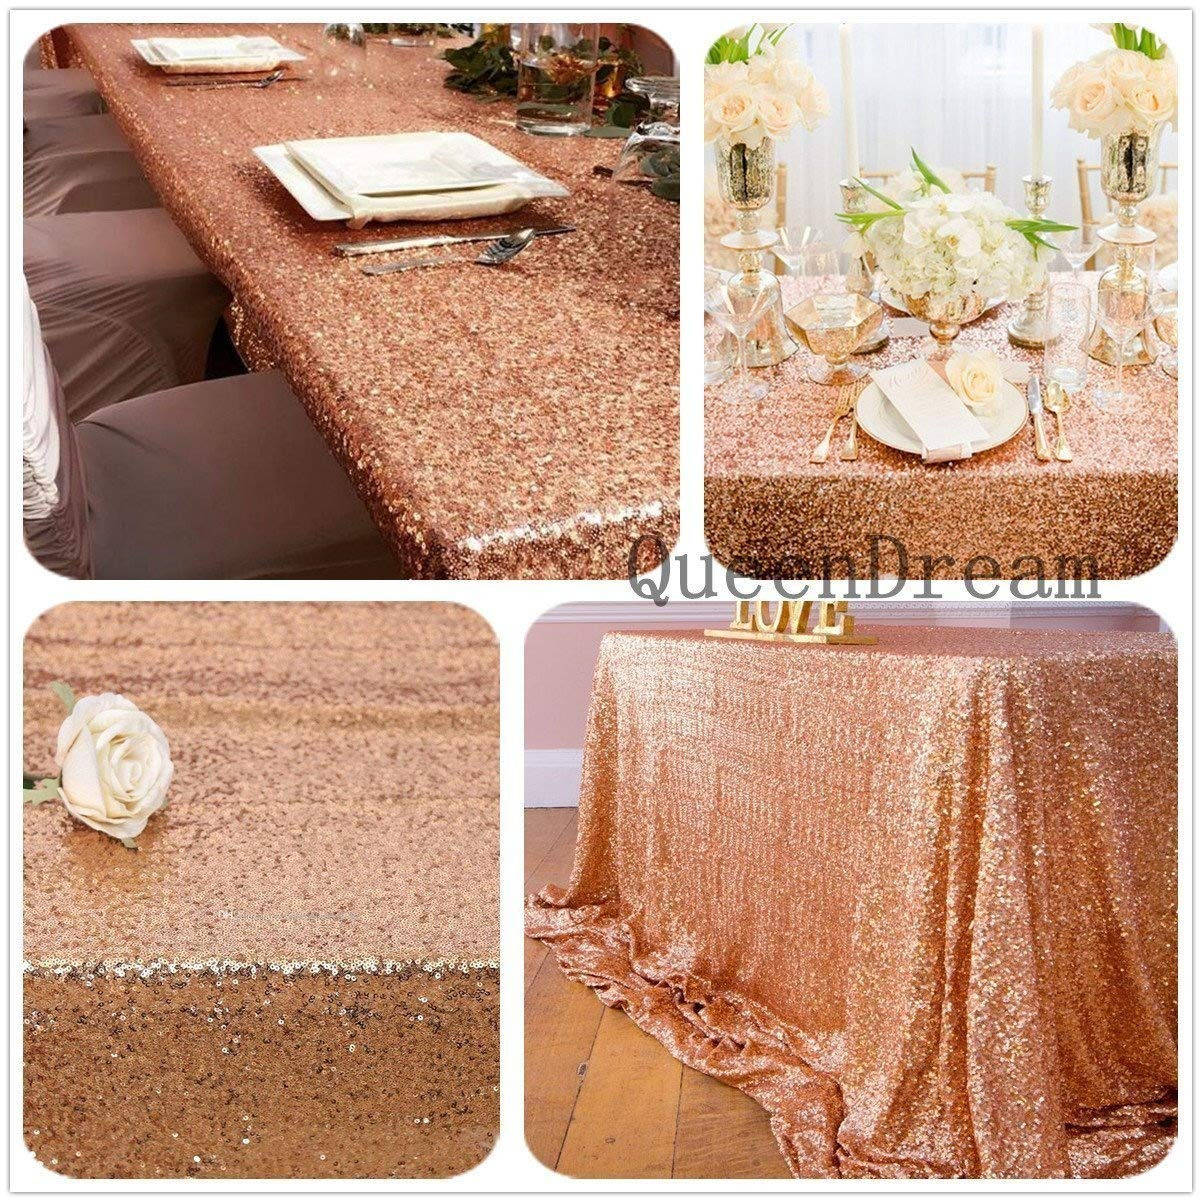 (130cm x 130cm, Rose Gold) - QueenDream sequins fabric 130cm x 130cm rose gold sequin Tableclothe sequin tablecloth square Sequin Linens sequin table cover For home out/dining   B0772QKNY6